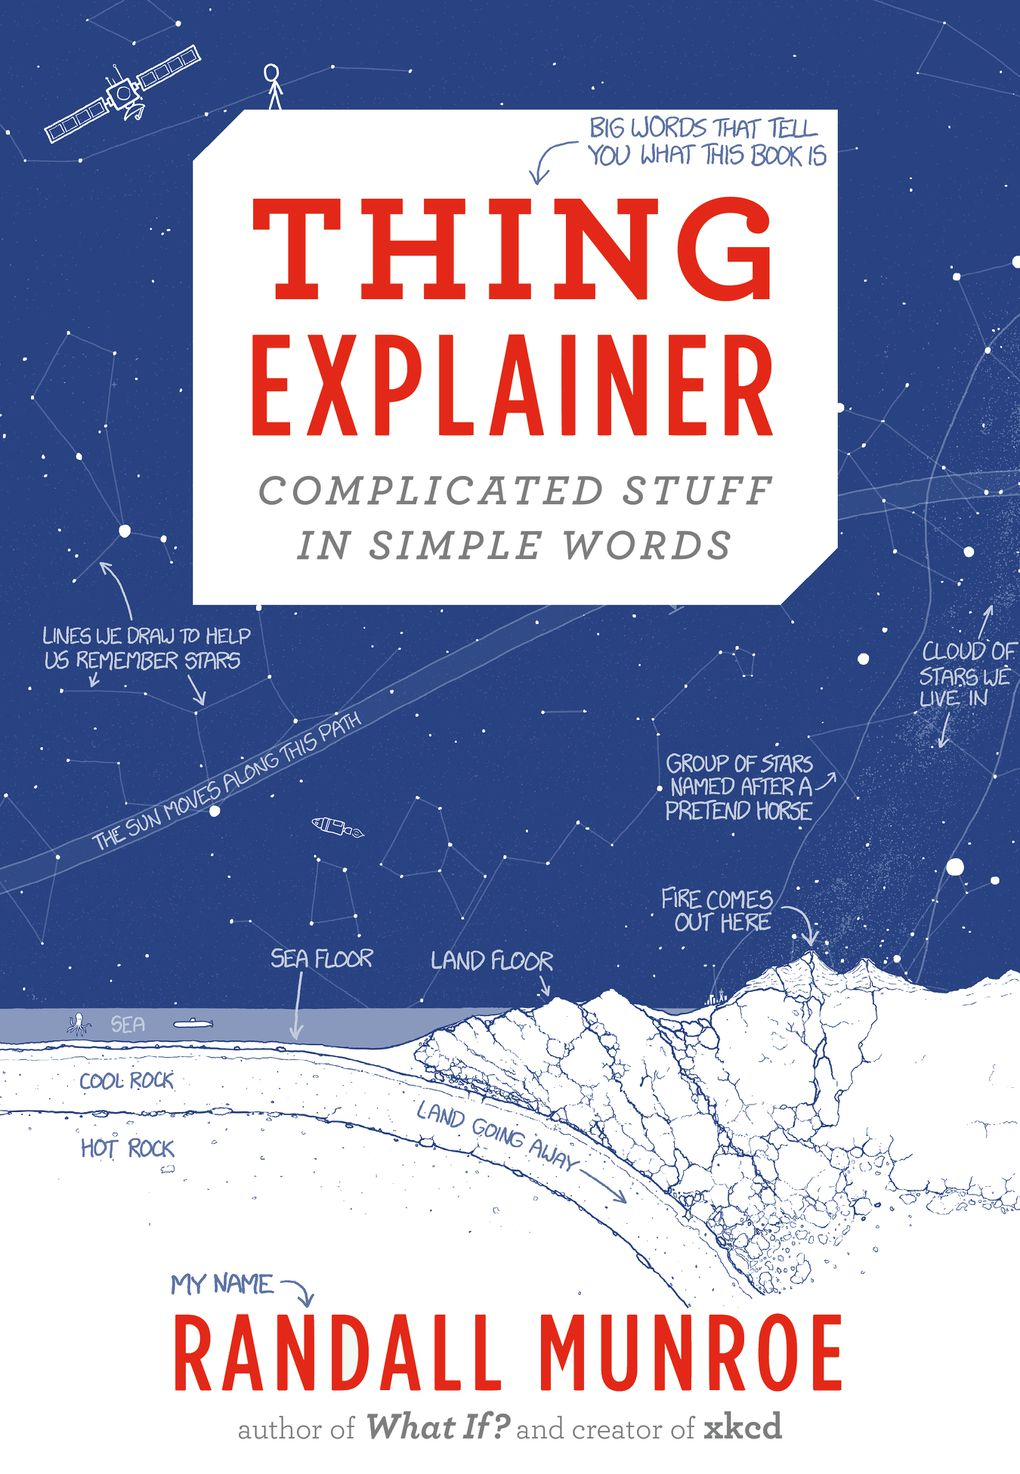 Xkcd has a new book about explaining complicated subjects in simple courtesy of randall munroe houghton mifflin harcourt ccuart Choice Image